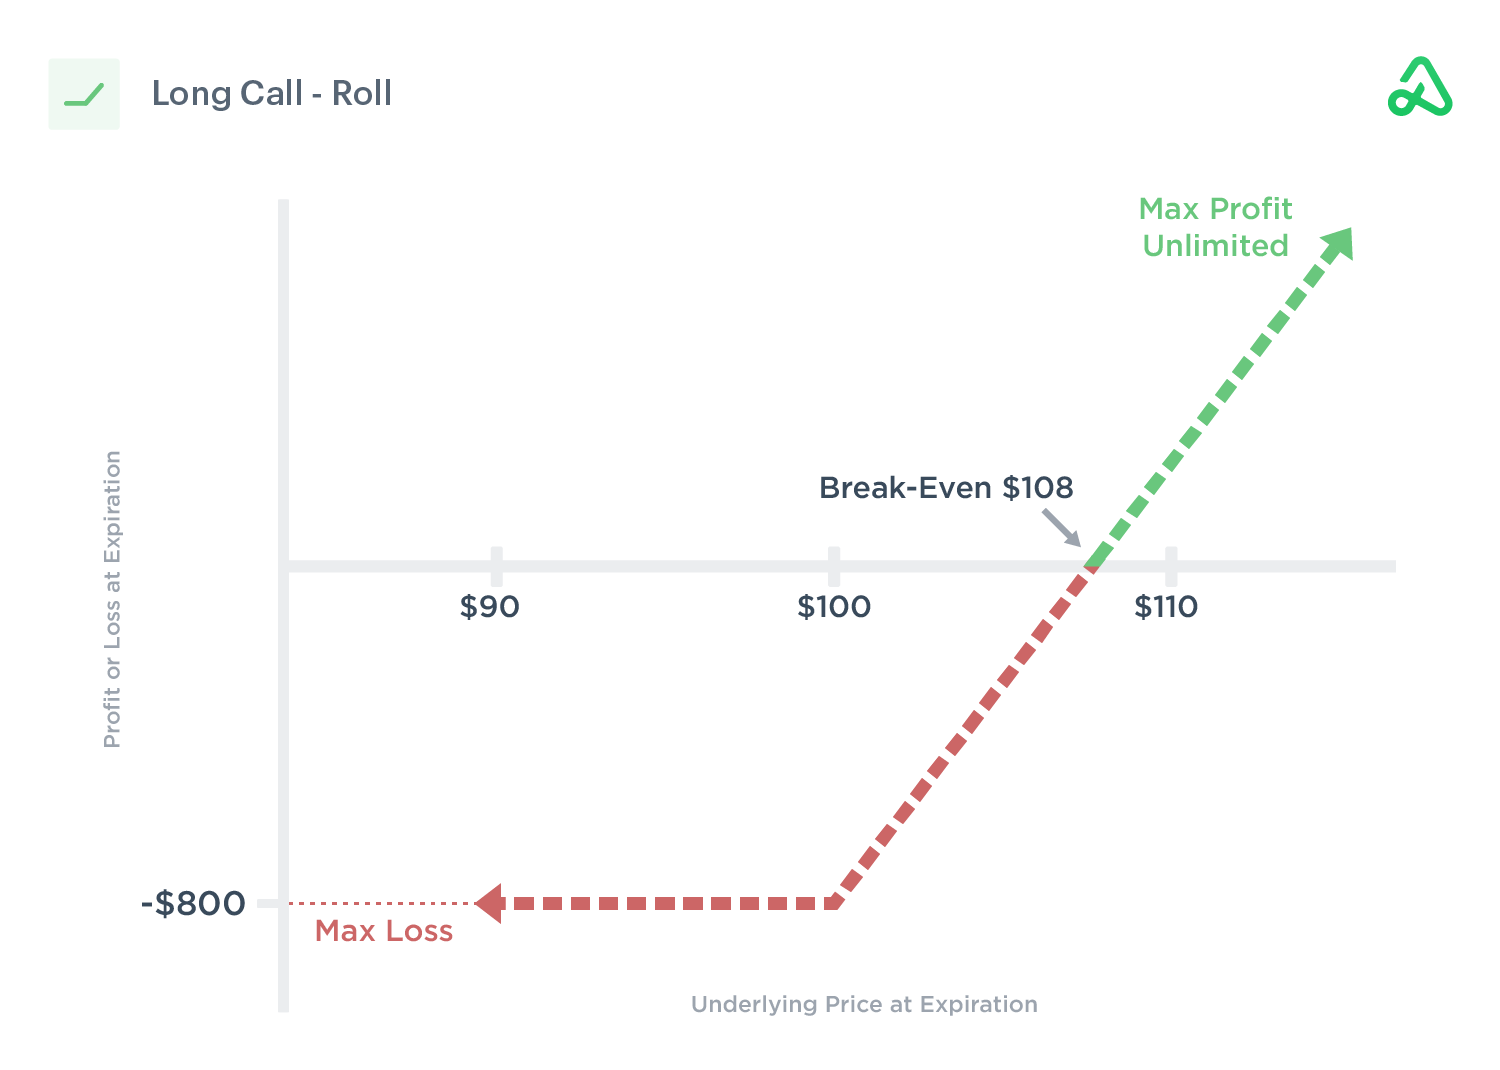 Payoff diagram of a long call roll out for a debit